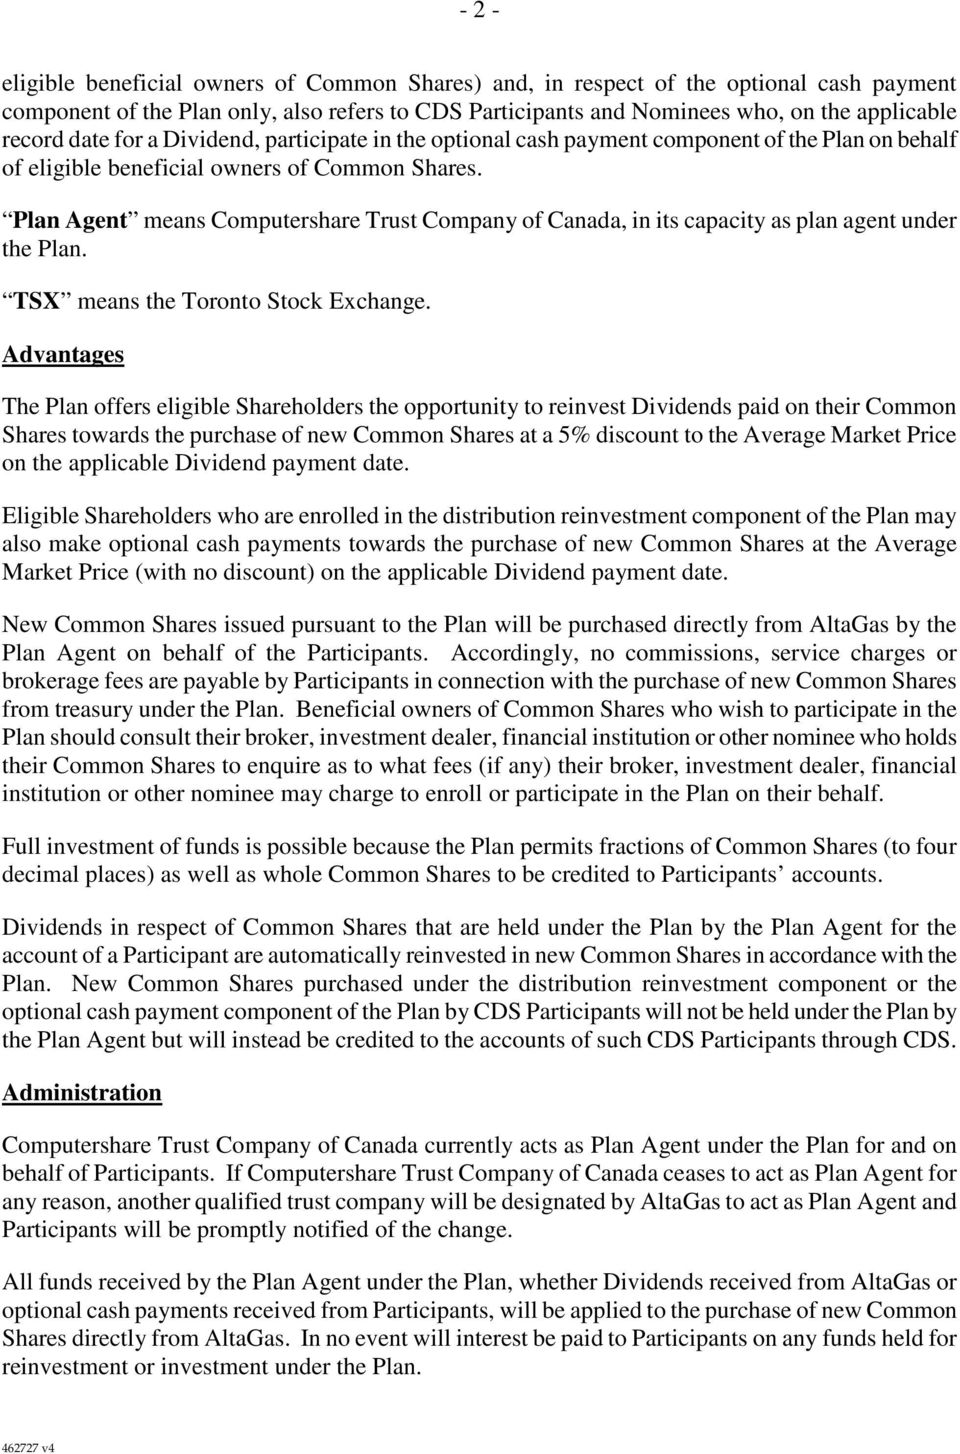 Plan Agent means Computershare Trust Company of Canada, in its capacity as plan agent under the Plan. TSX means the Toronto Stock Exchange.